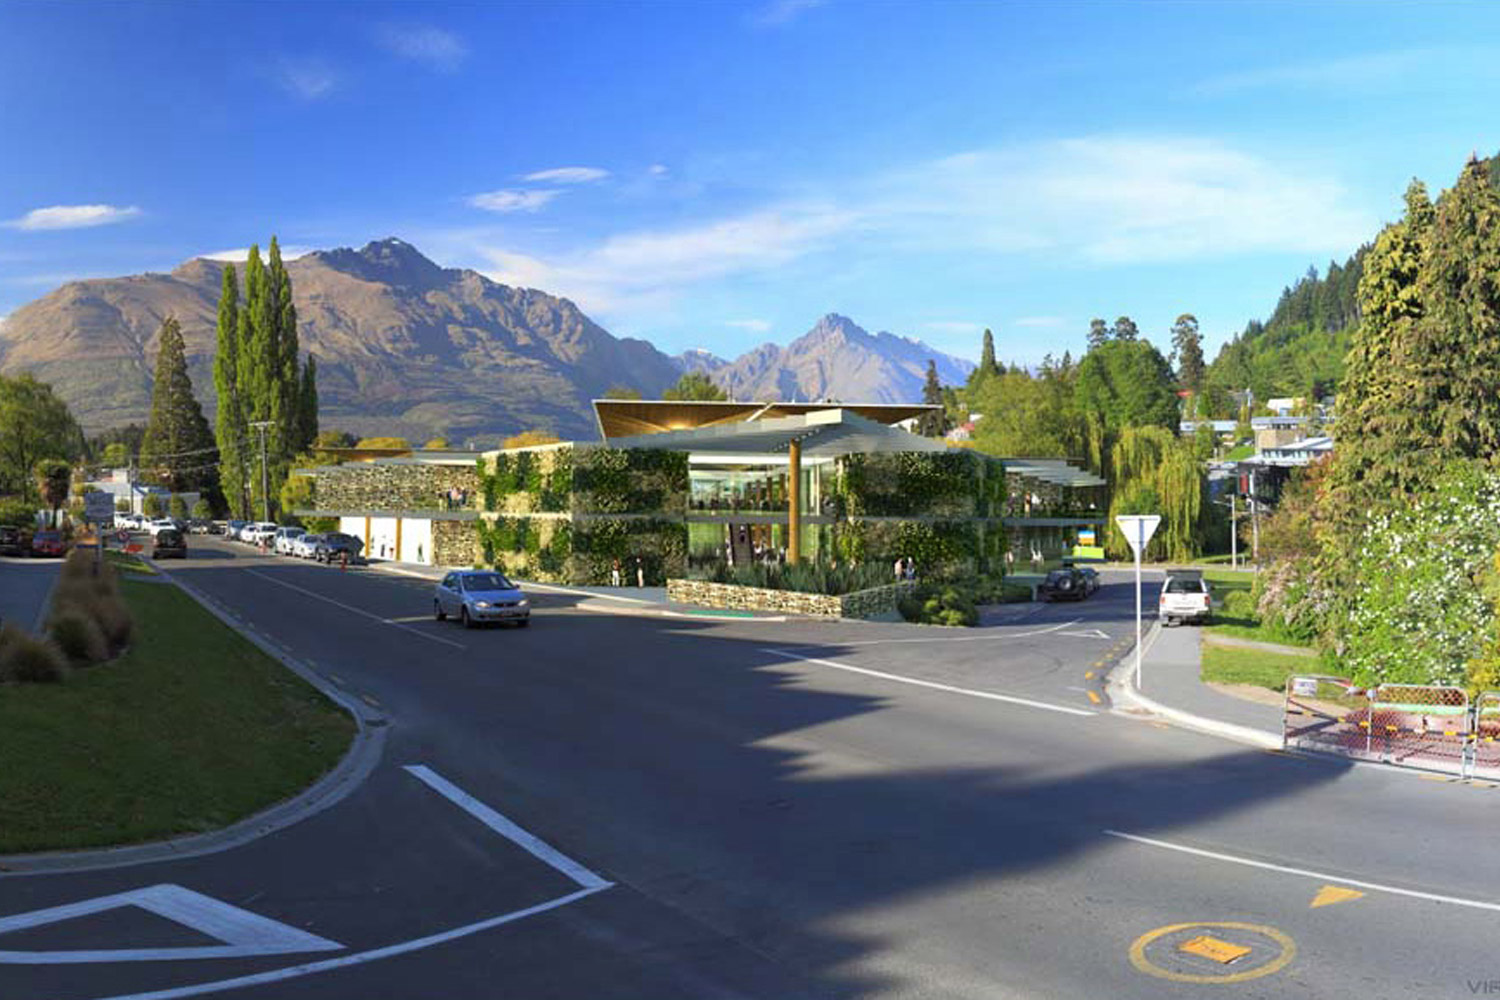 A rendered conceptual drawing of the proposed Queenstown Convention Centre by Gary Todd Architecture.